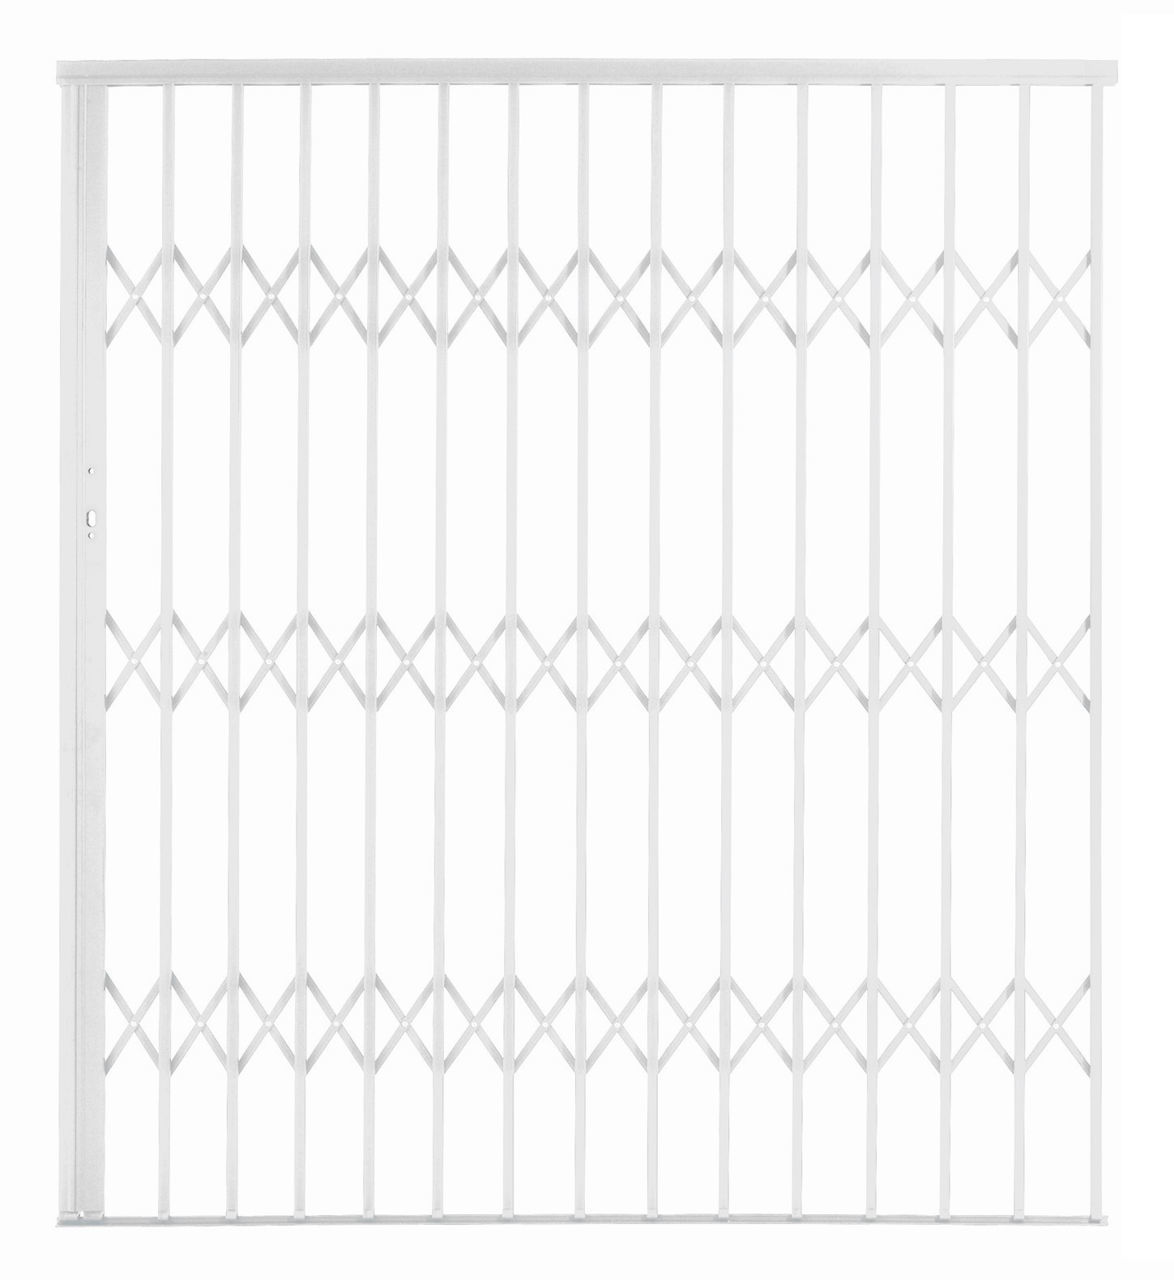 Picture of Alu-Glide Security Gate 1800mm x 2150mm White